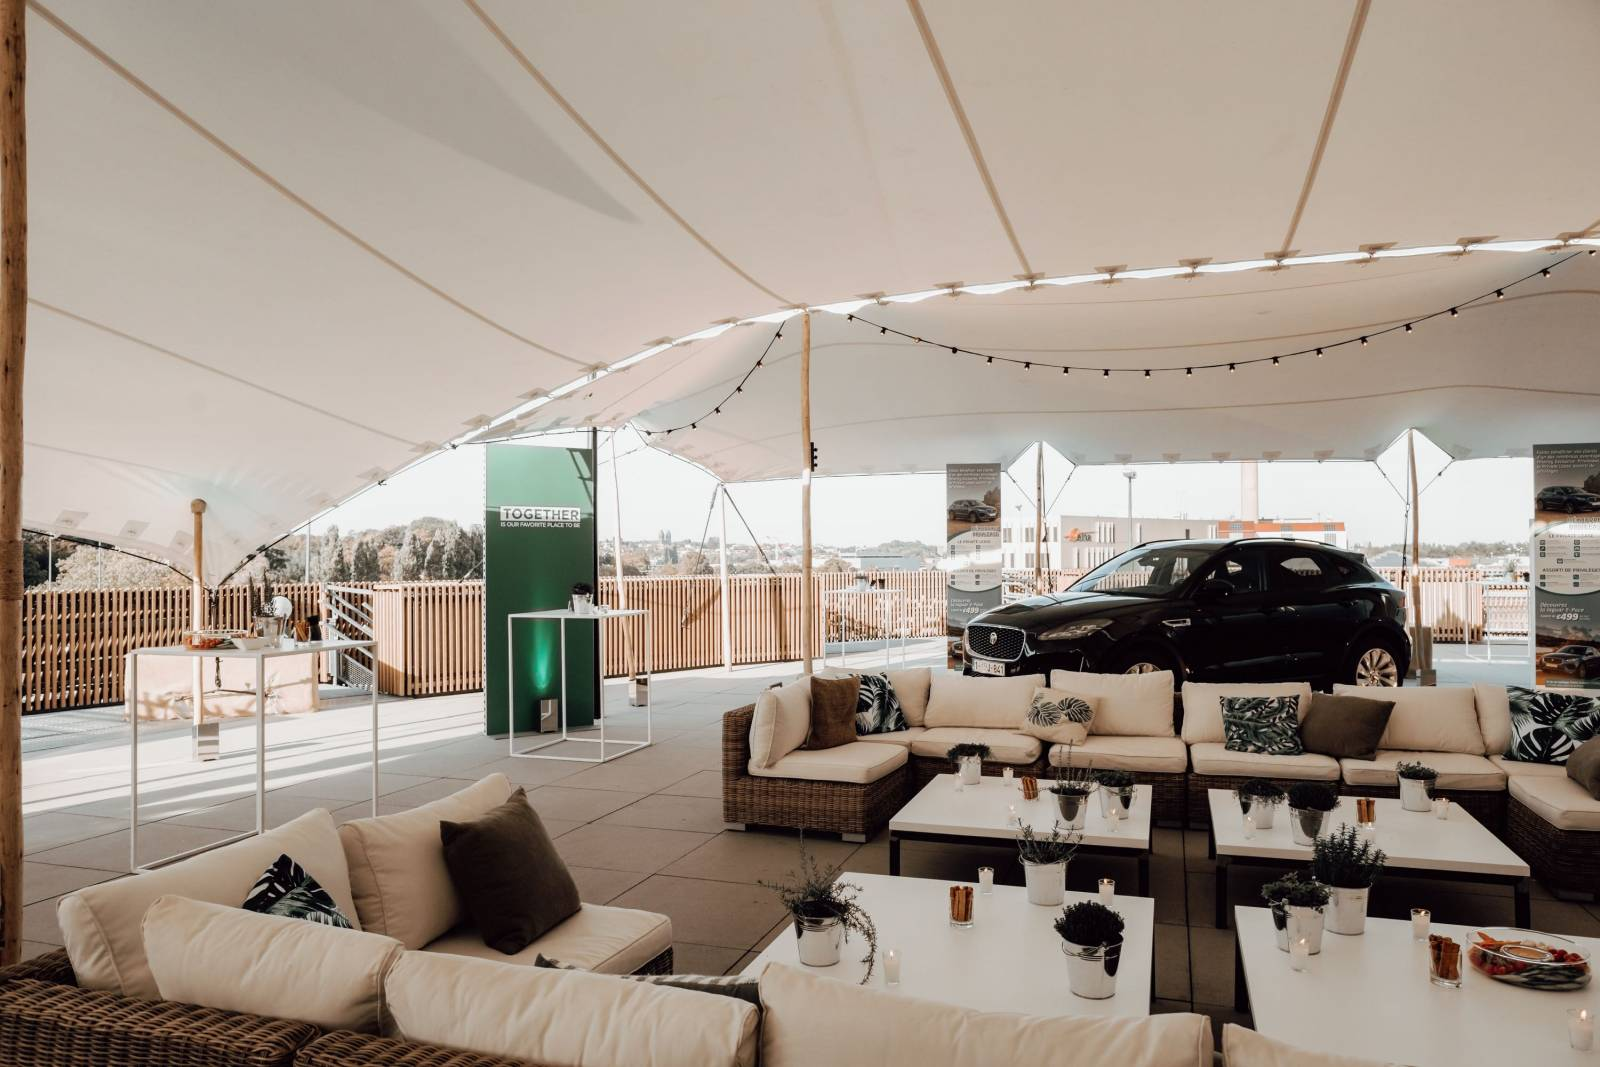 Docks Dome - Eventlocatie - Feestzaal - Brussel - House of Events - 14